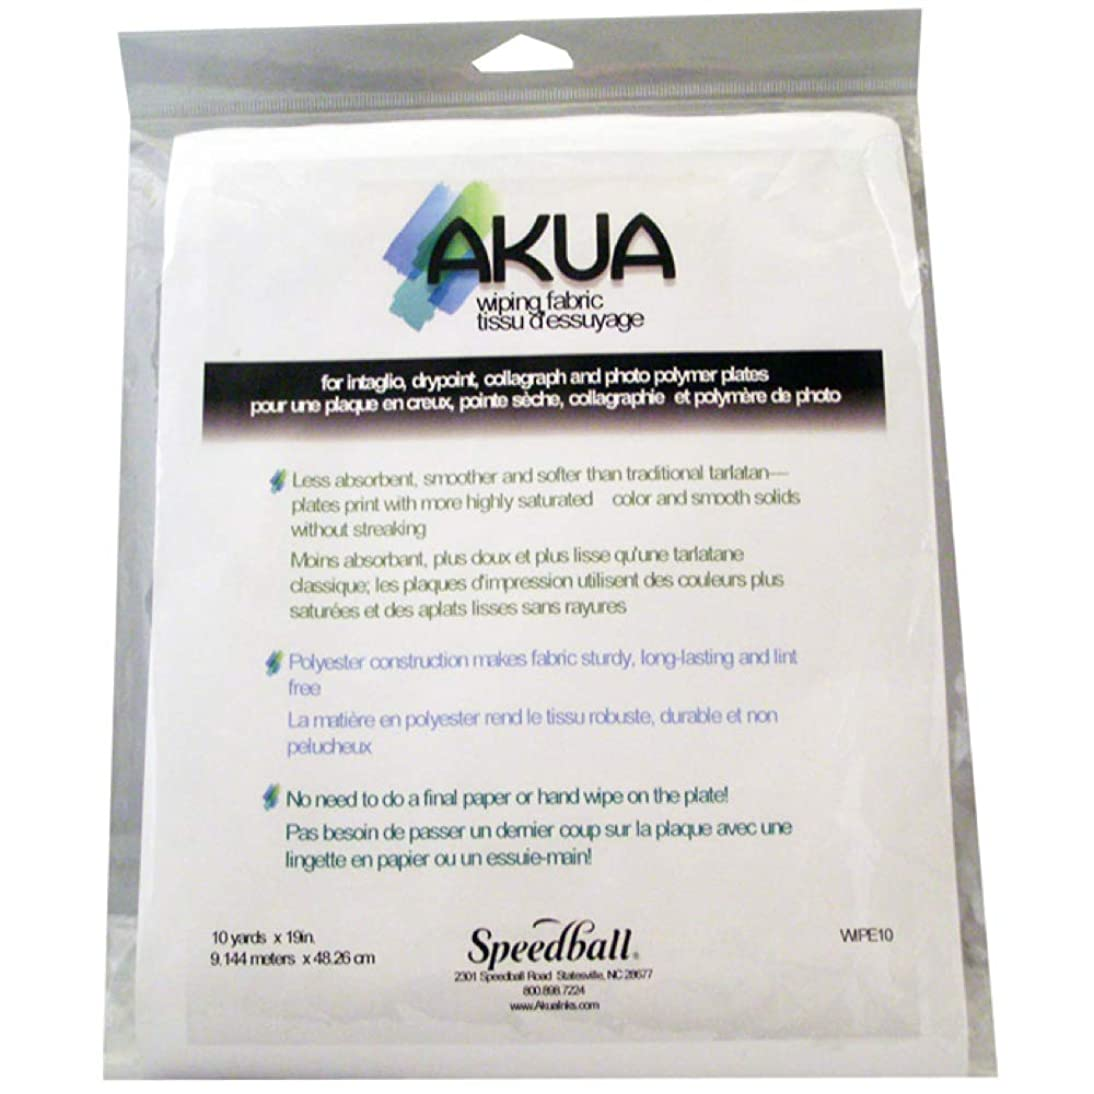 Akua Wiping Fabric for Cleaning Print Making Plates (WIPE10)